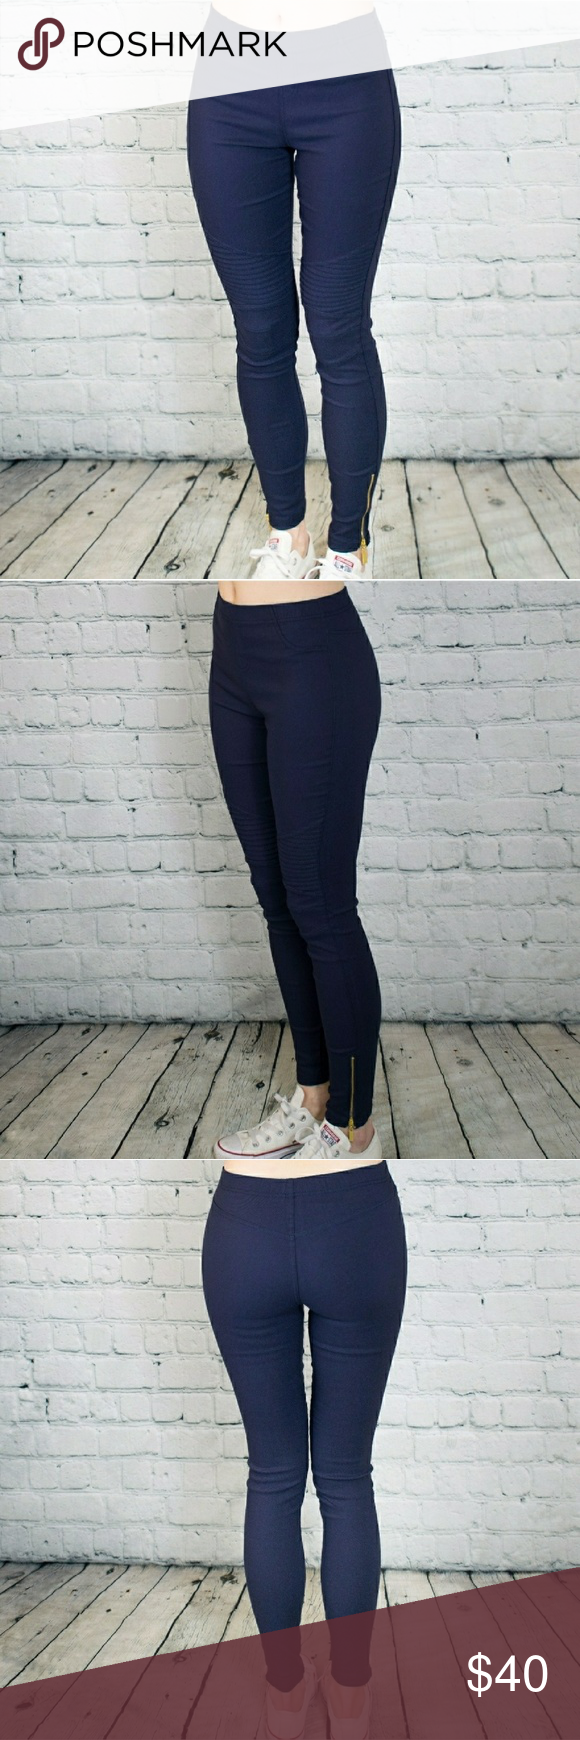 bf68eb0bb03af Plus Size Navy Blue Moto Jeggings Plus size moto pants in navy blue. These  are